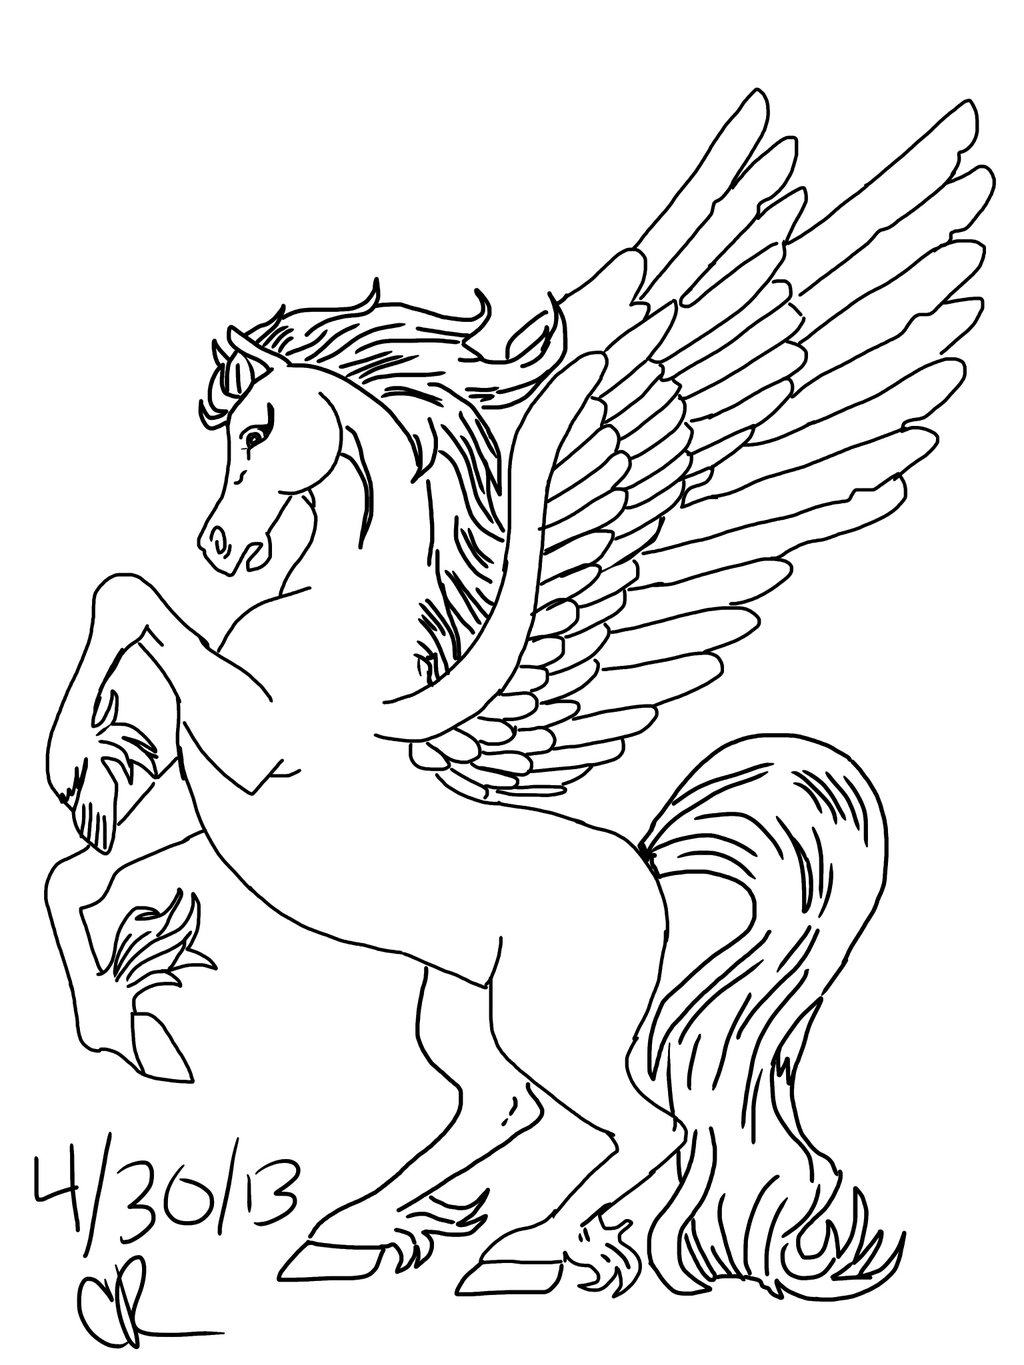 Unicorn With Wings Drawing at GetDrawings | Free download